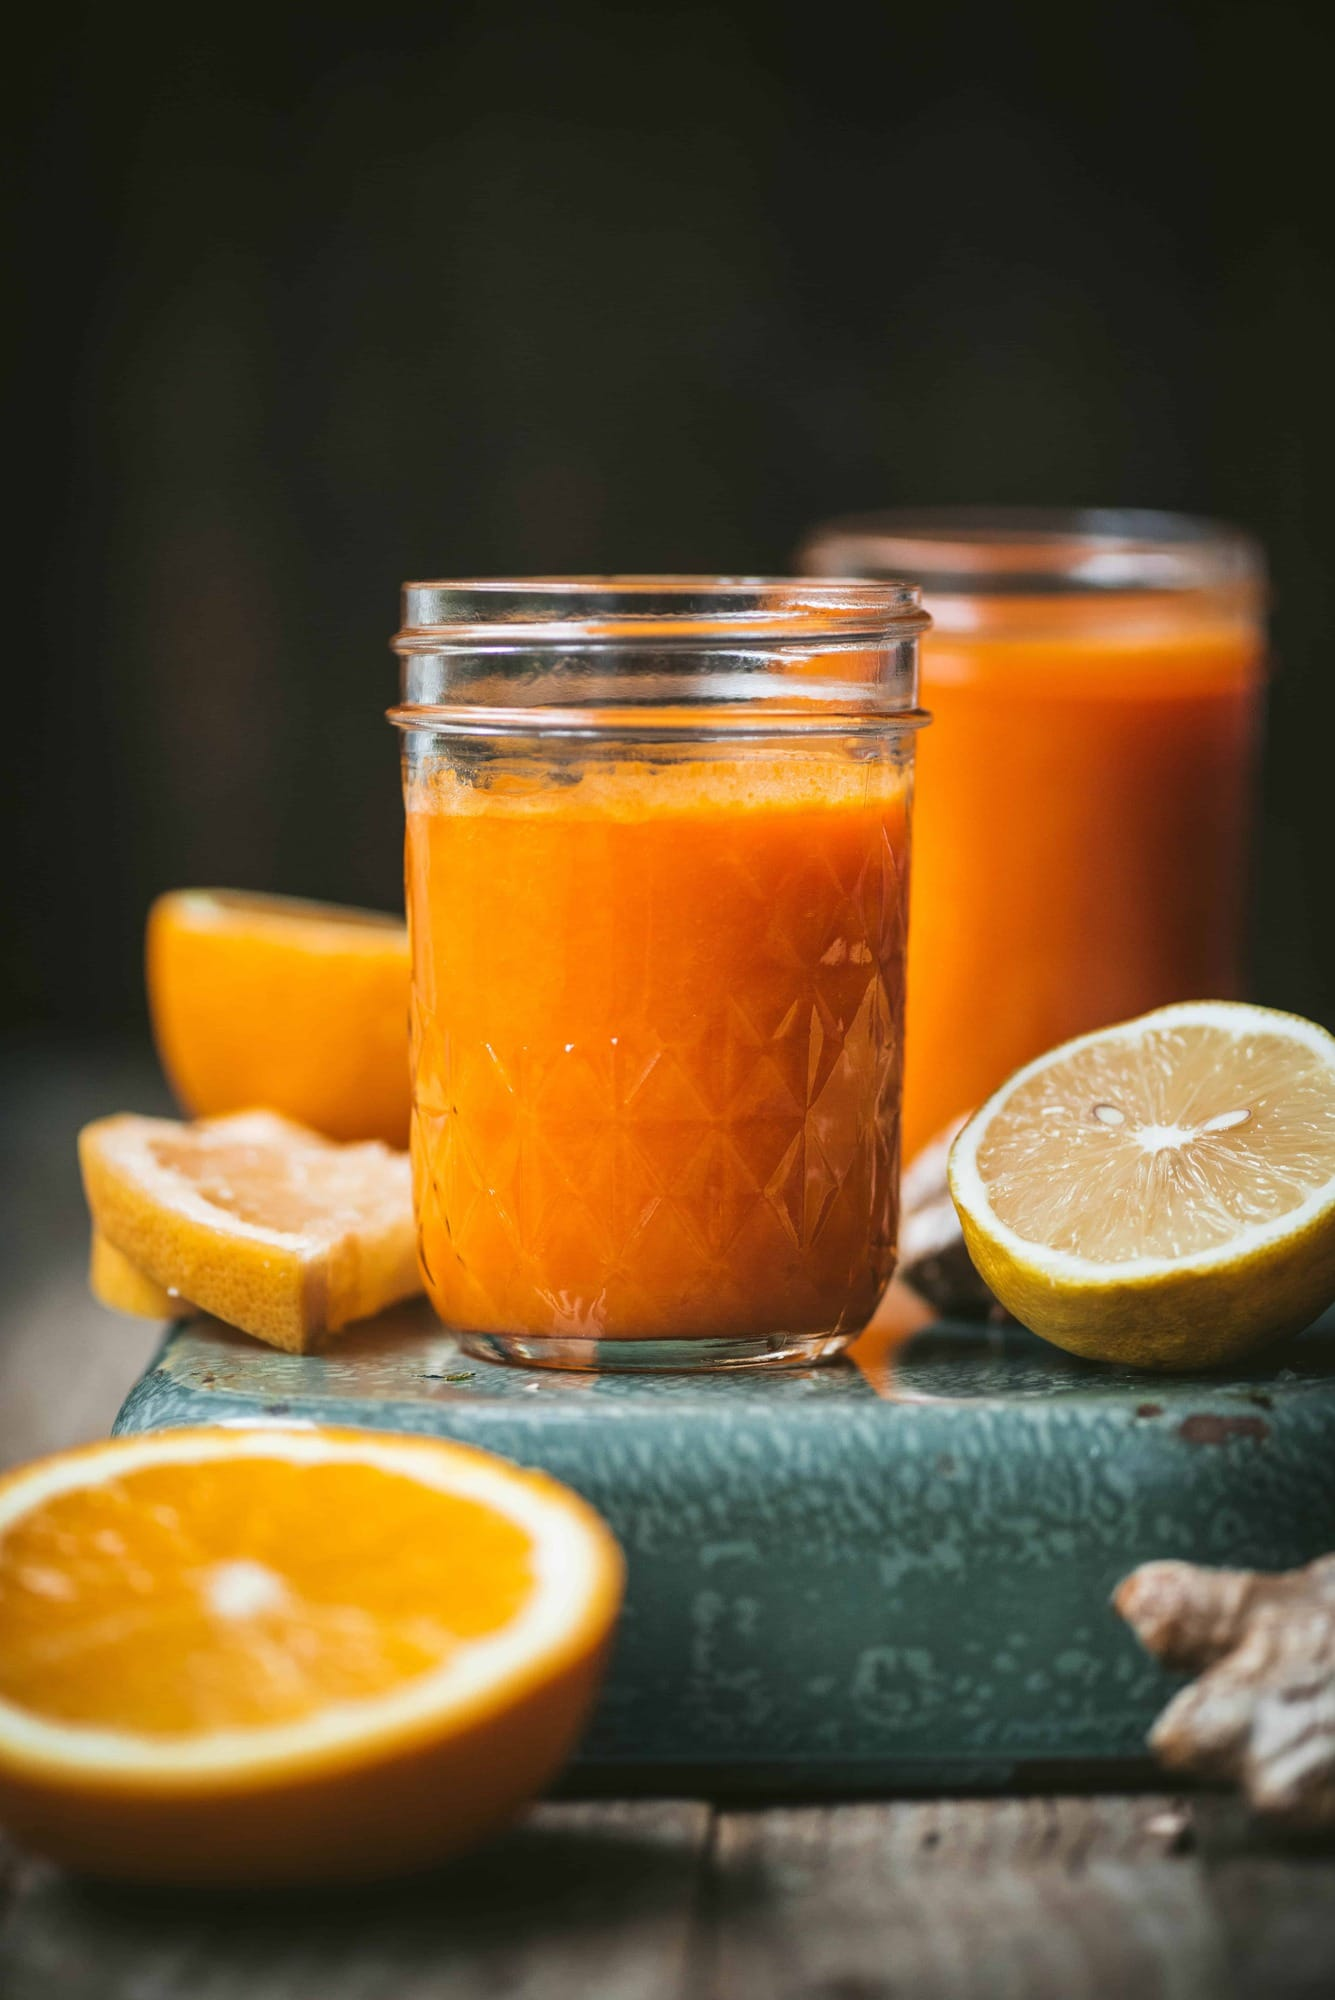 Close up of homemade orange juice with fresh lemons and oranges on a teal background